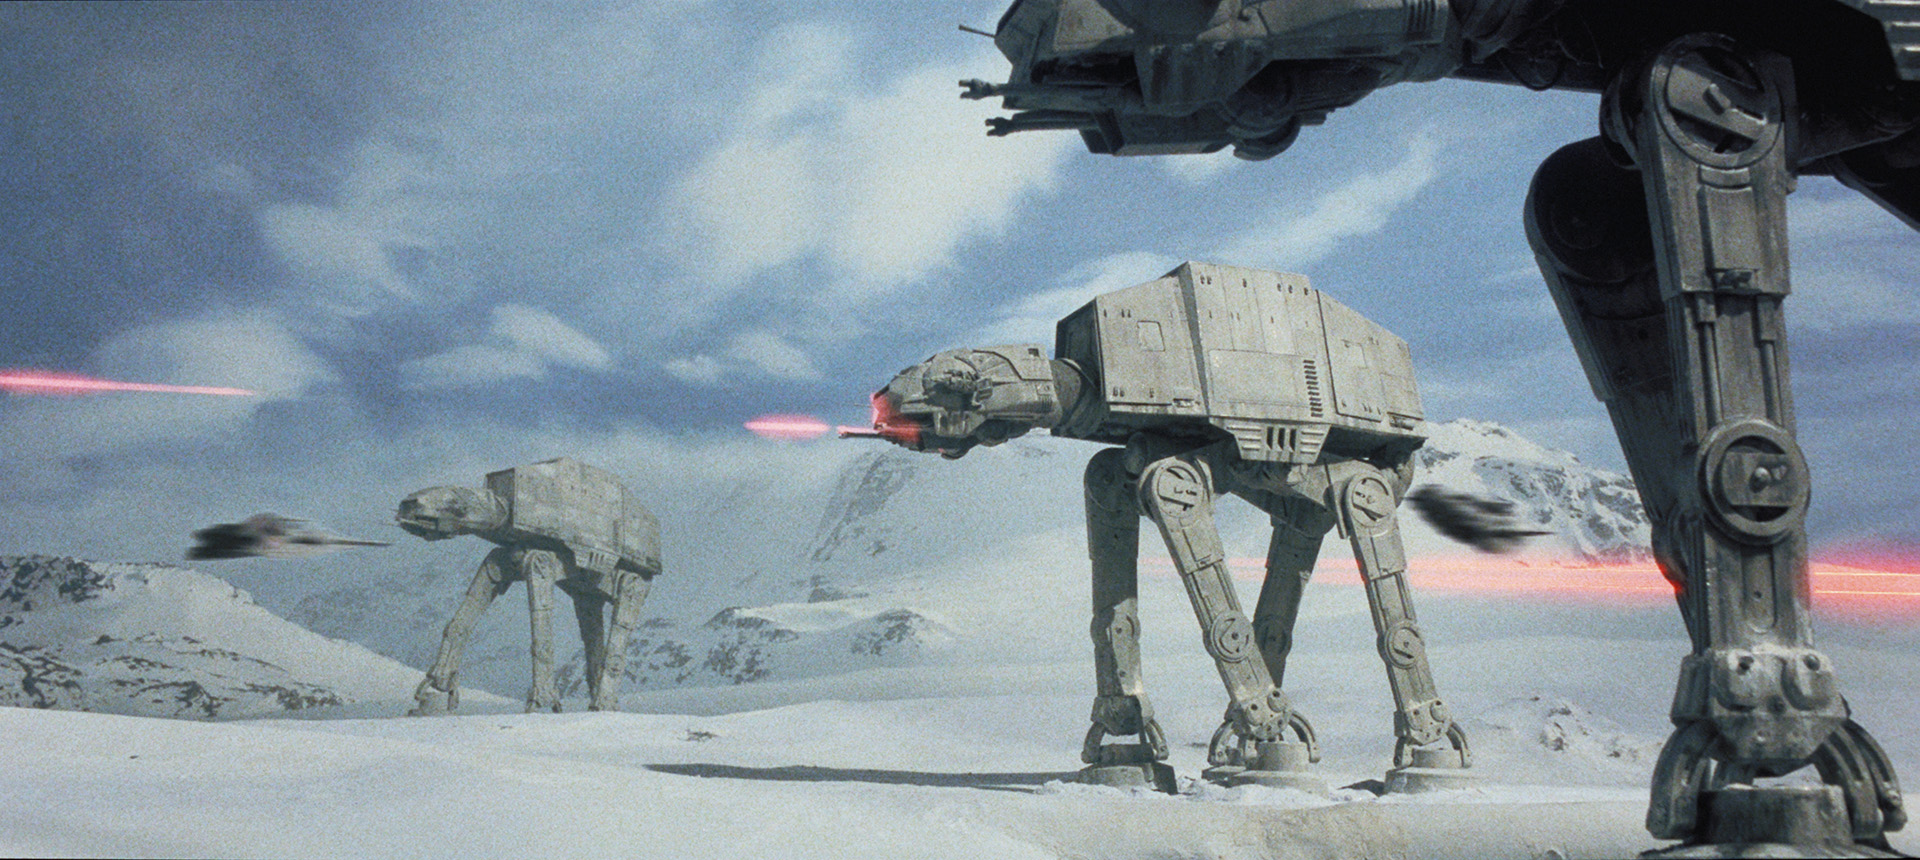 1920x860 - Empire Strikes Back 33